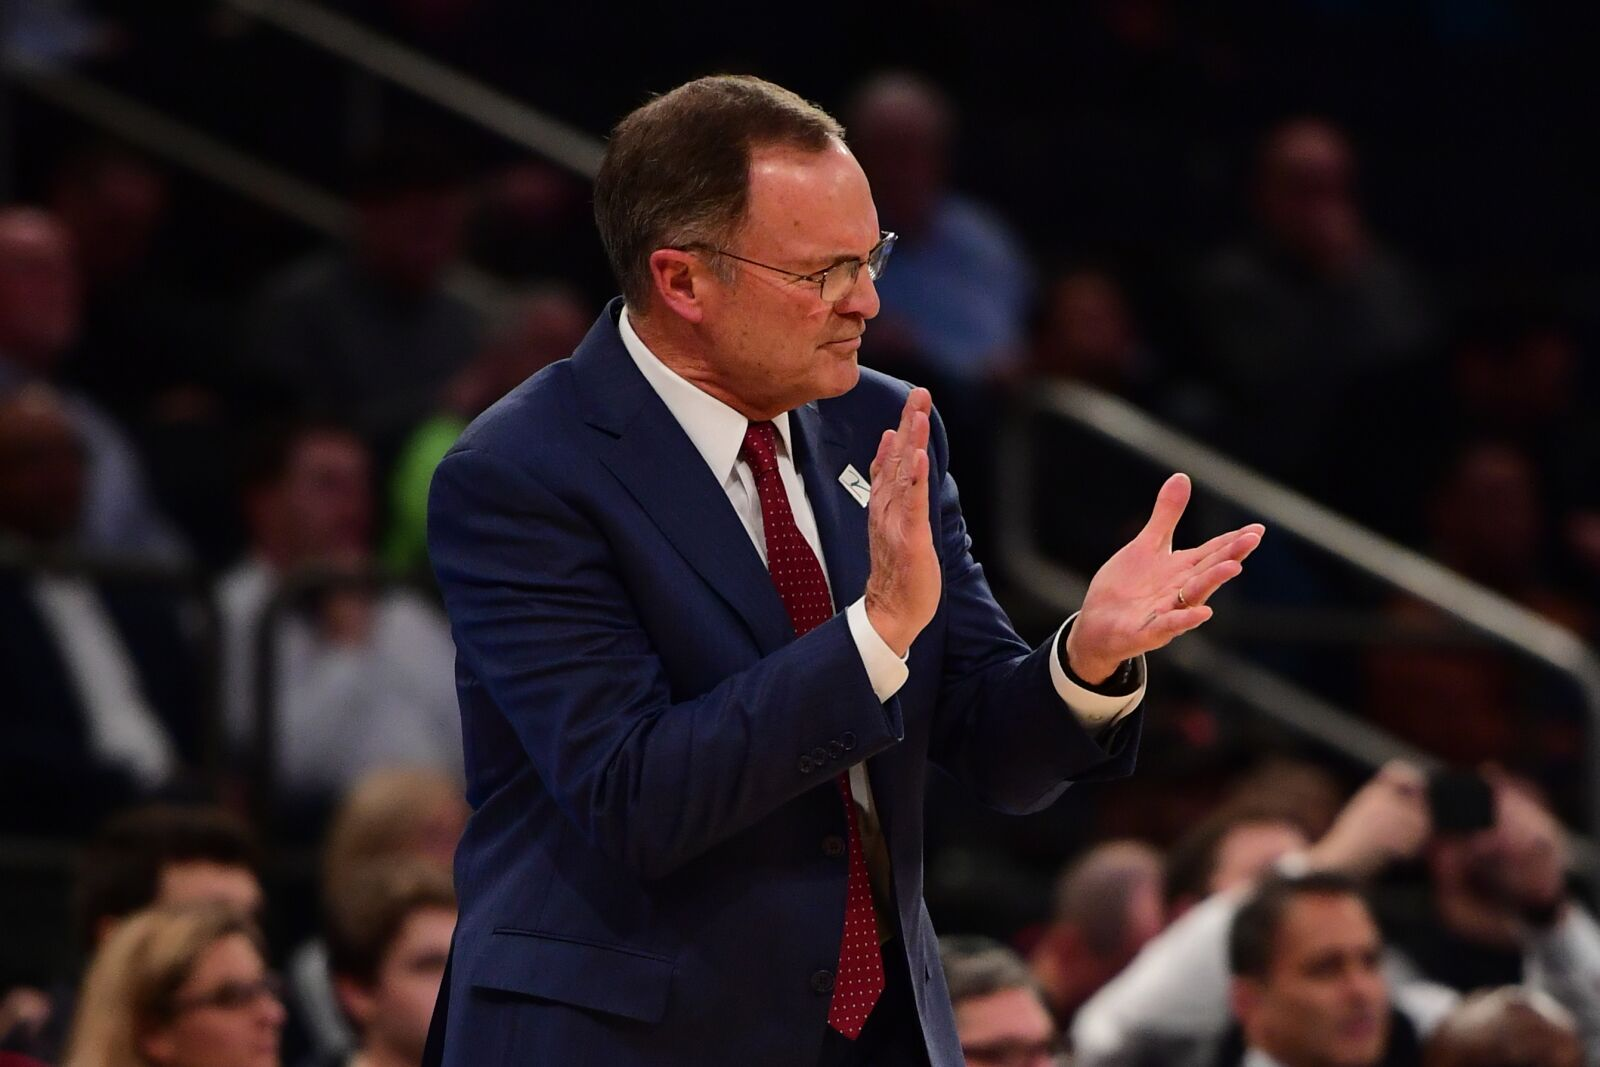 NEW YORK, NEW YORK - DECEMBER 04: Oklahoma Soon, the main coach of Lon Kruger, transforms during the first half of the game against Notre Dame fighting in Ireland at Madison Square Garden on December 04, 2018 in New York. (Photo by Sarah Stier / Getty Images)